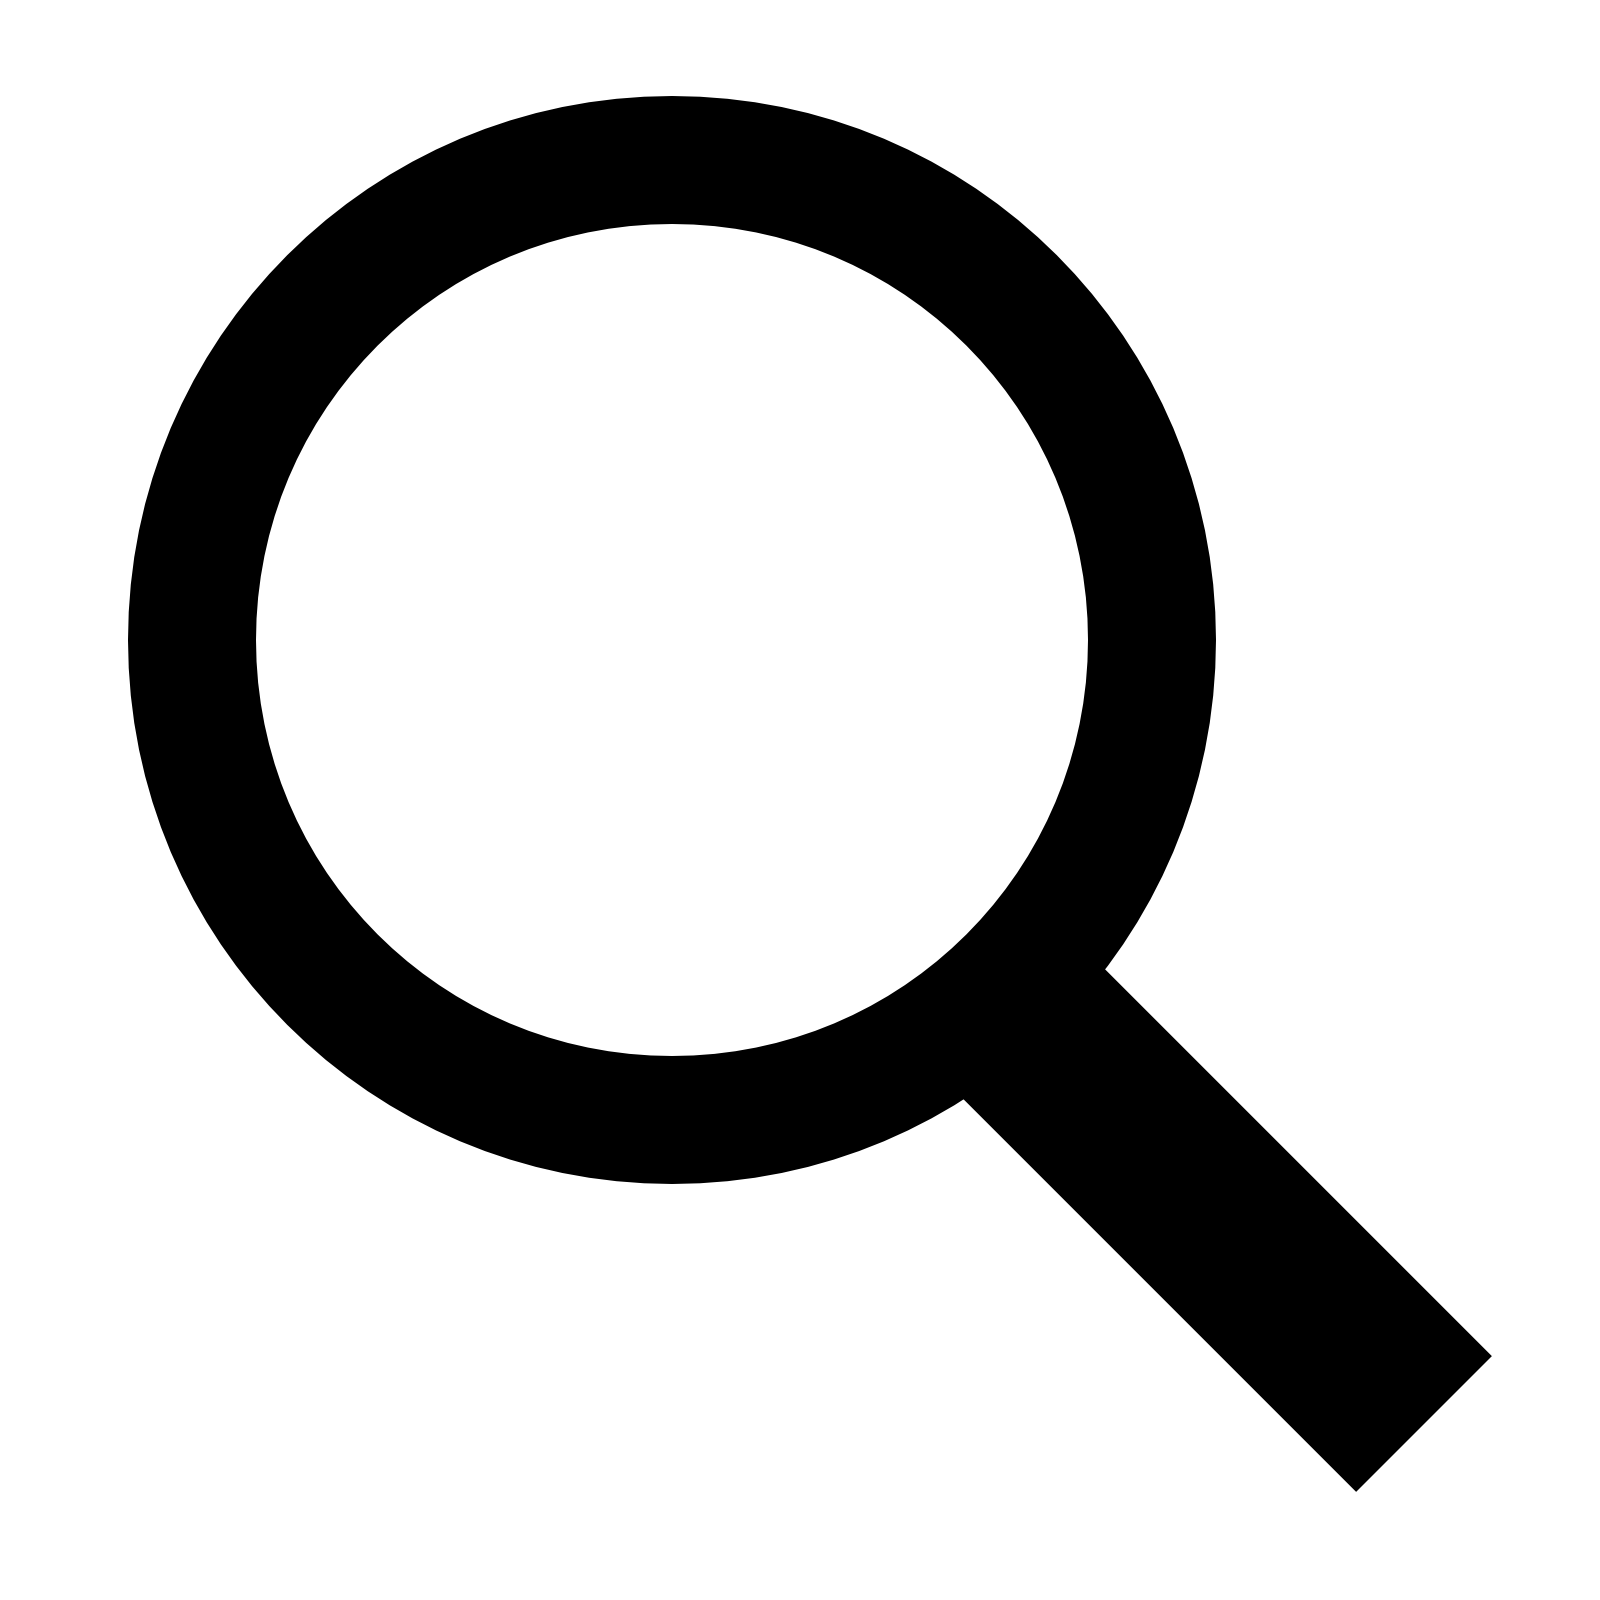 image transparent Computer icons glass search. Magnifying clipart box.